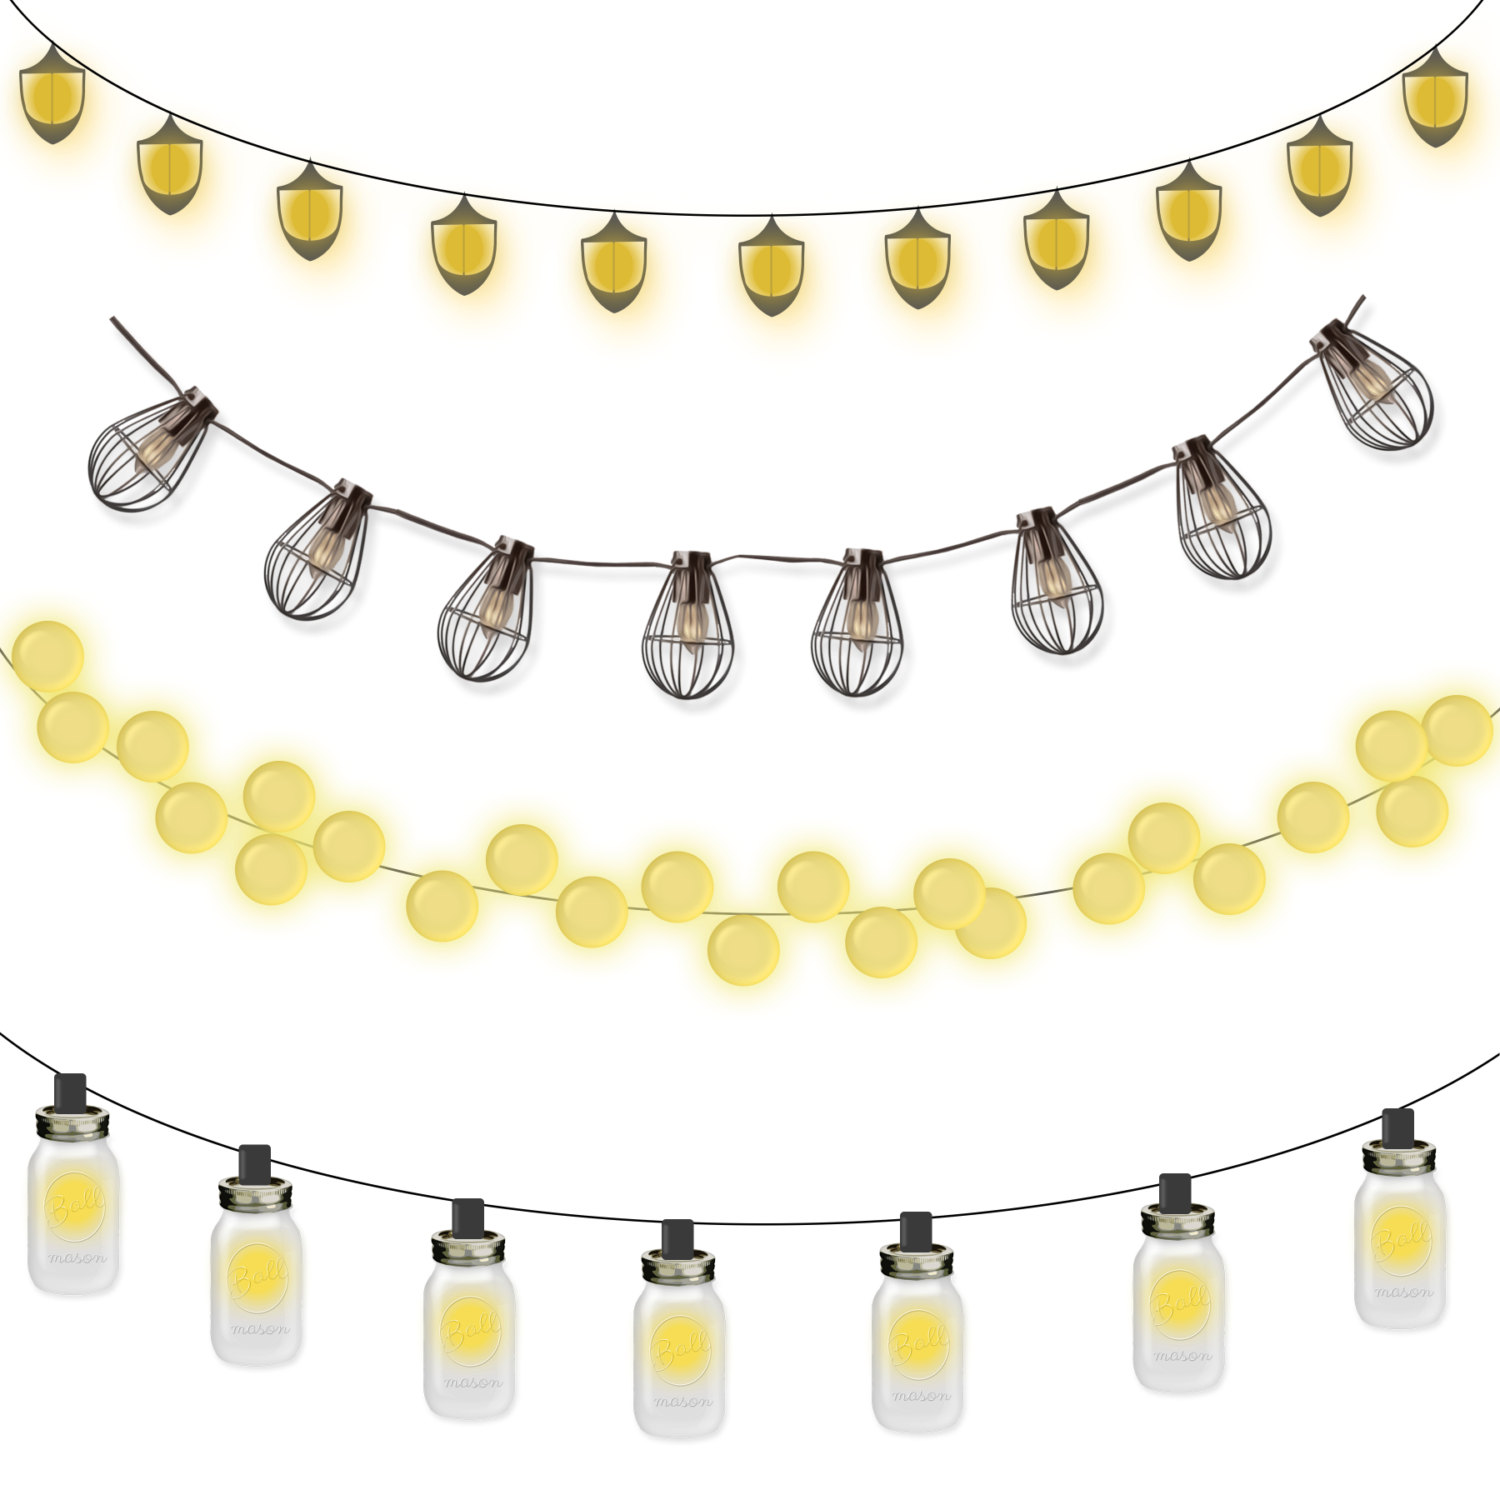 String Of Lights Clipart - Clipart Suggest